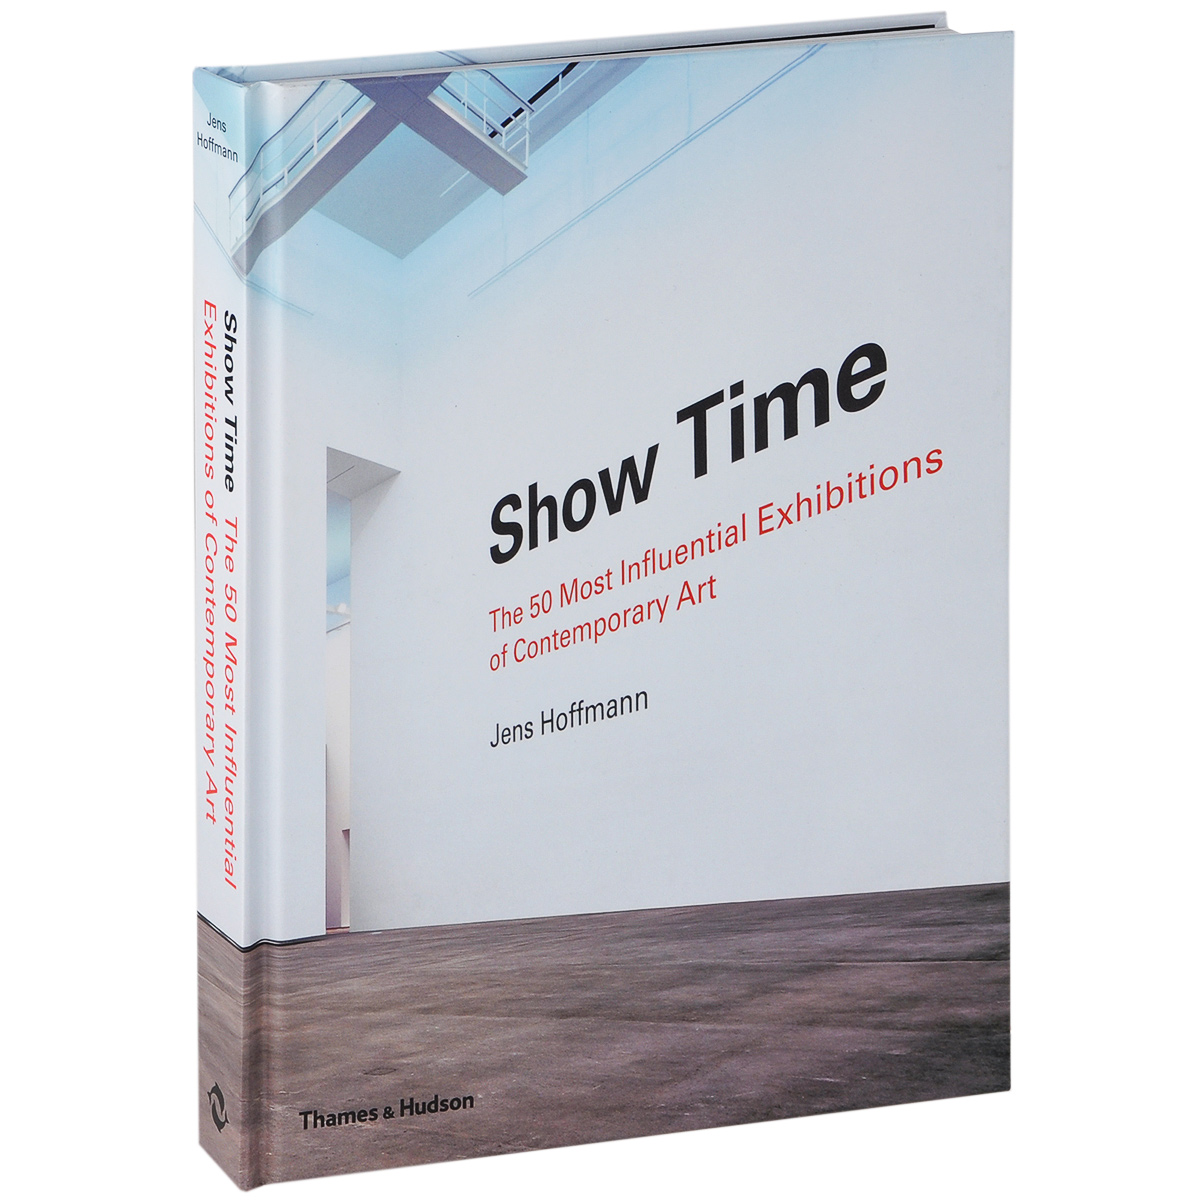 Show Time: The 50 Most Influential Exhibitions of Contemporary Art theatre show stker book